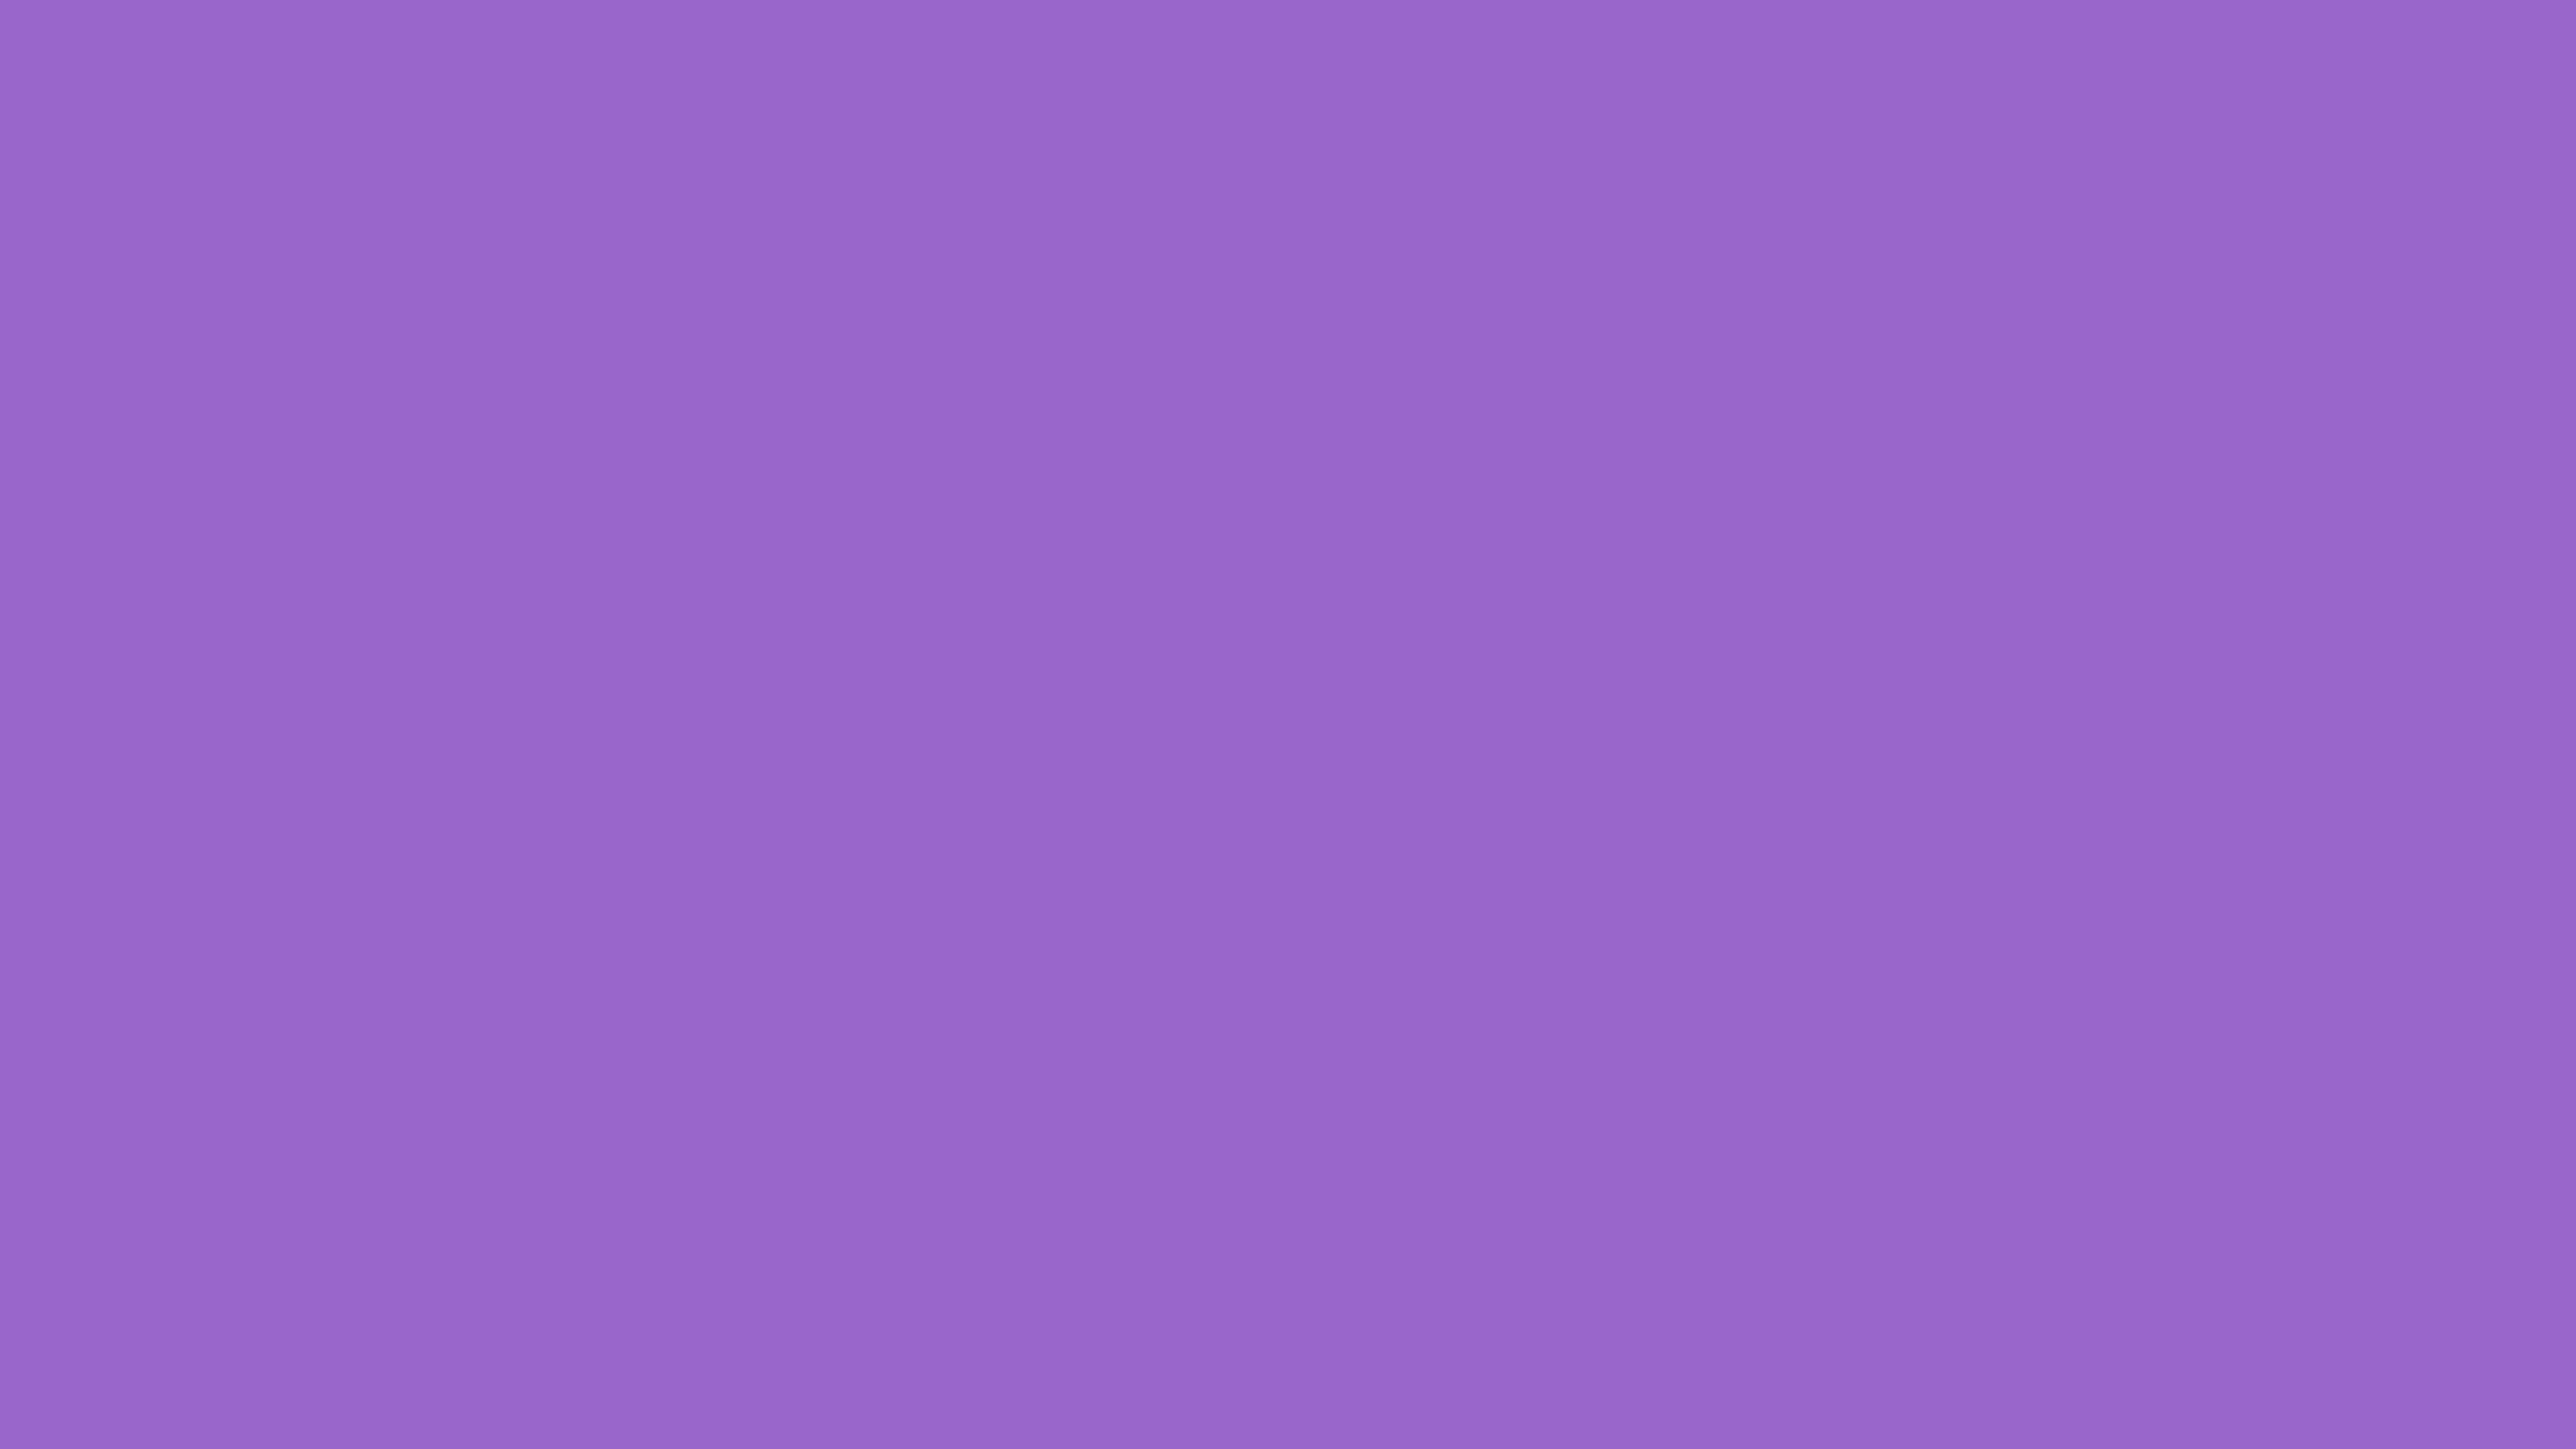 5120x2880 Amethyst Solid Color Background